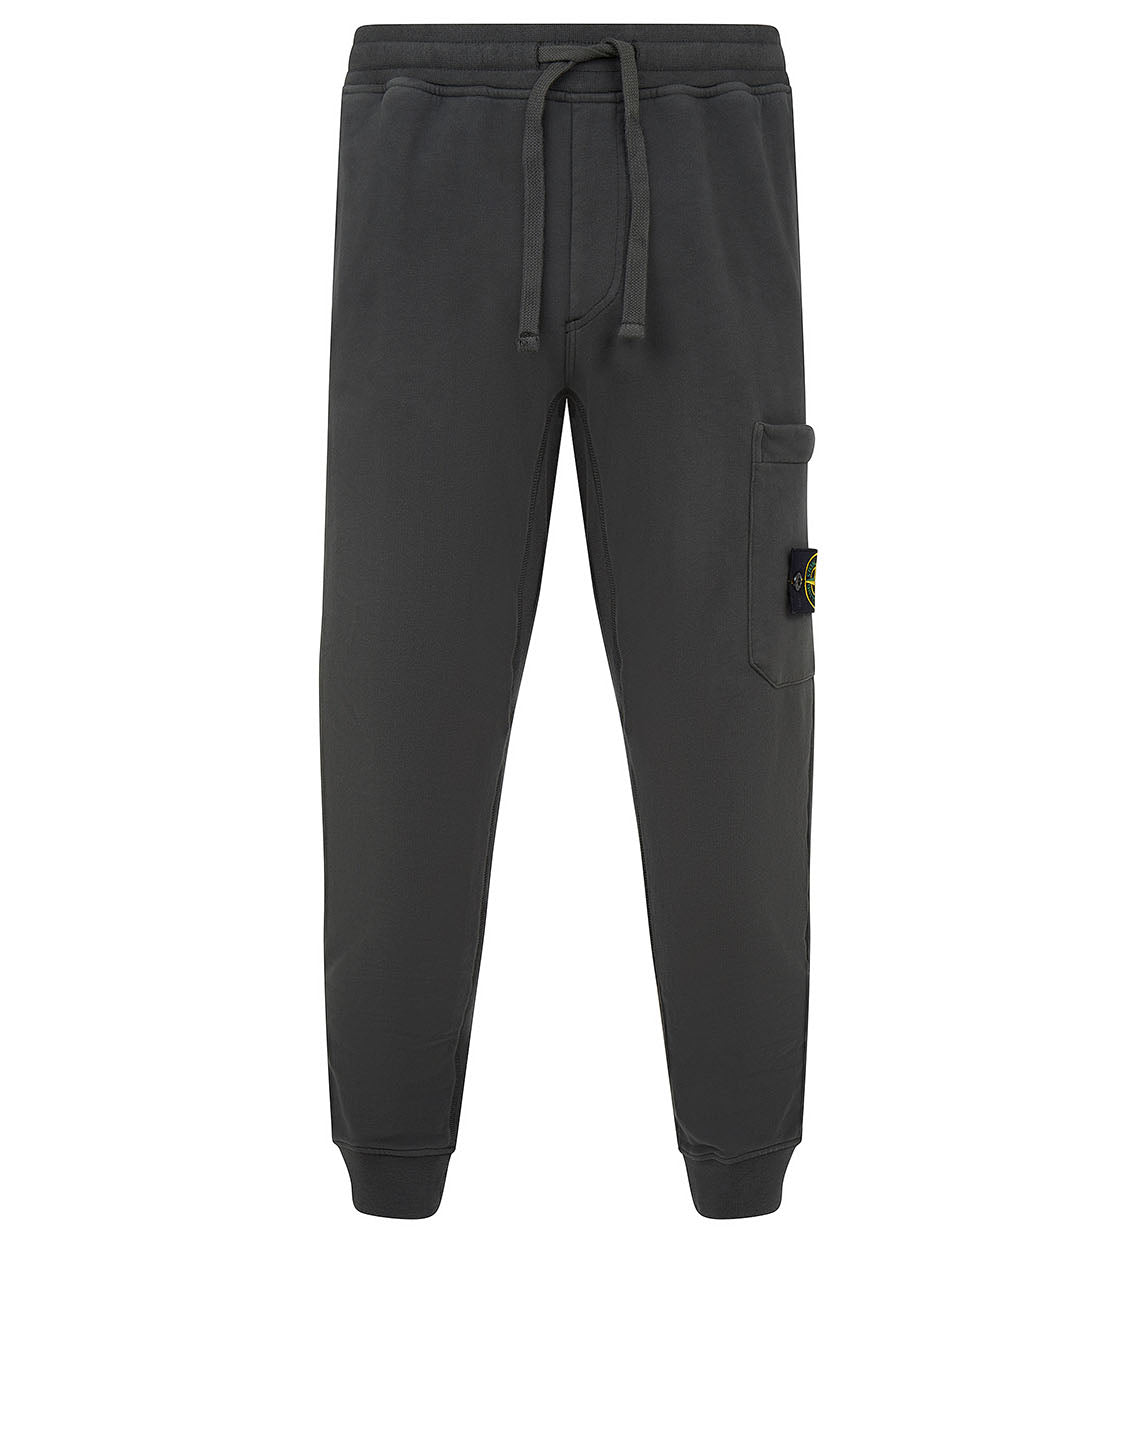 60320 Jogging Pants in Dark Grey